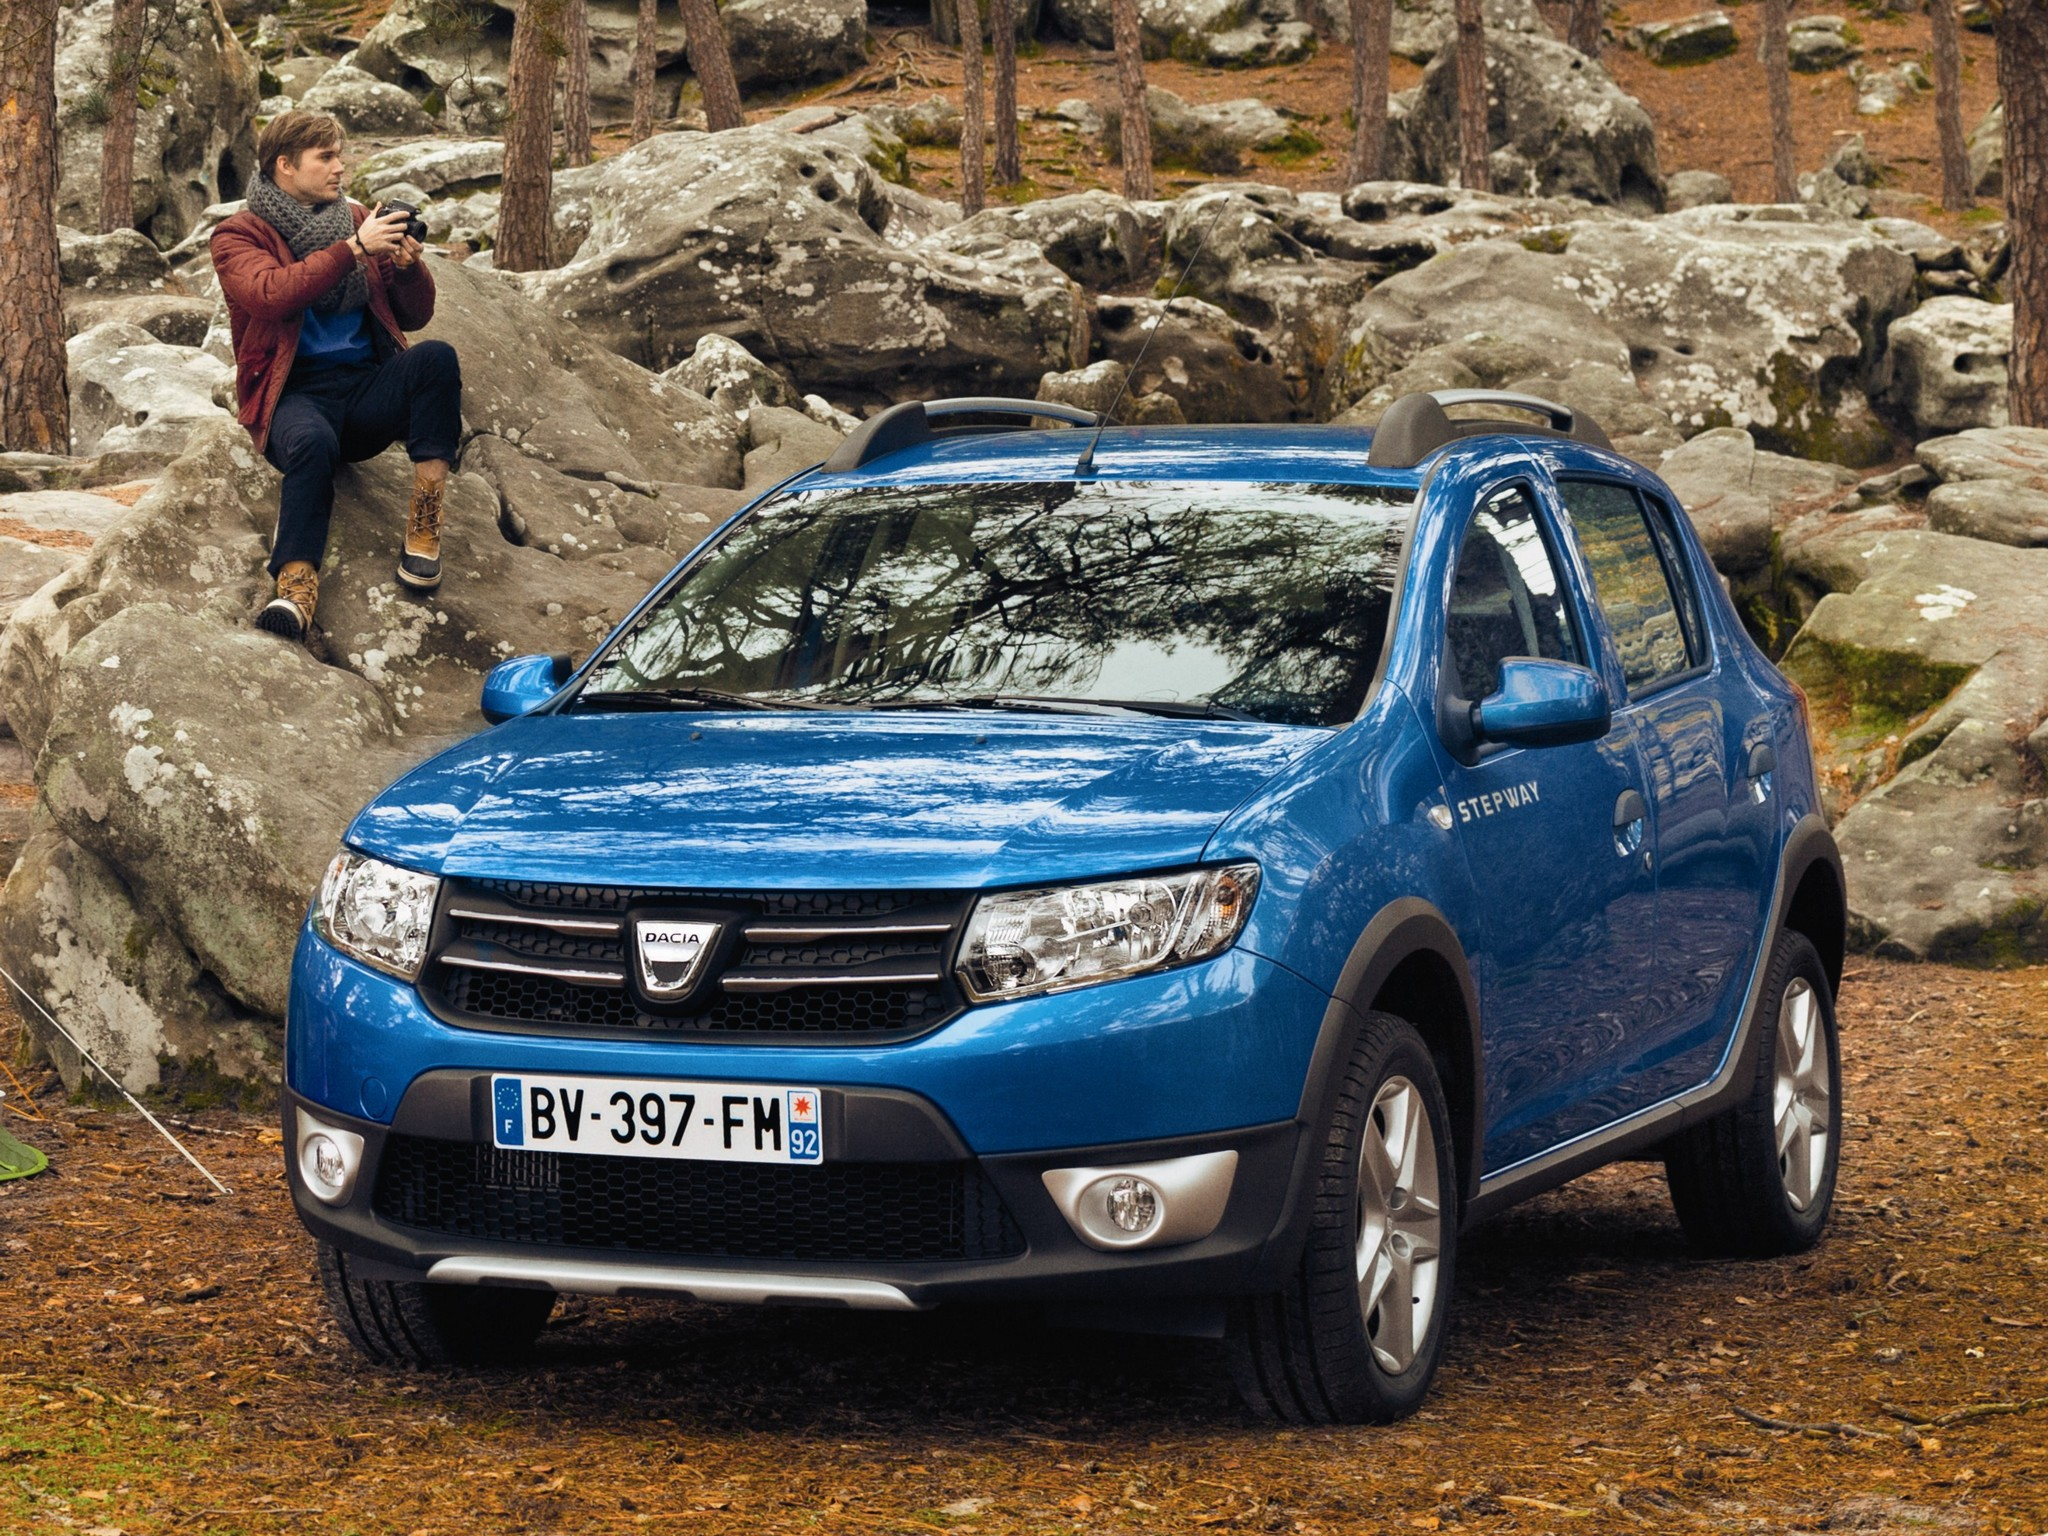 Dacia Sandero, a Romanian car brand in top 20 best selling ...